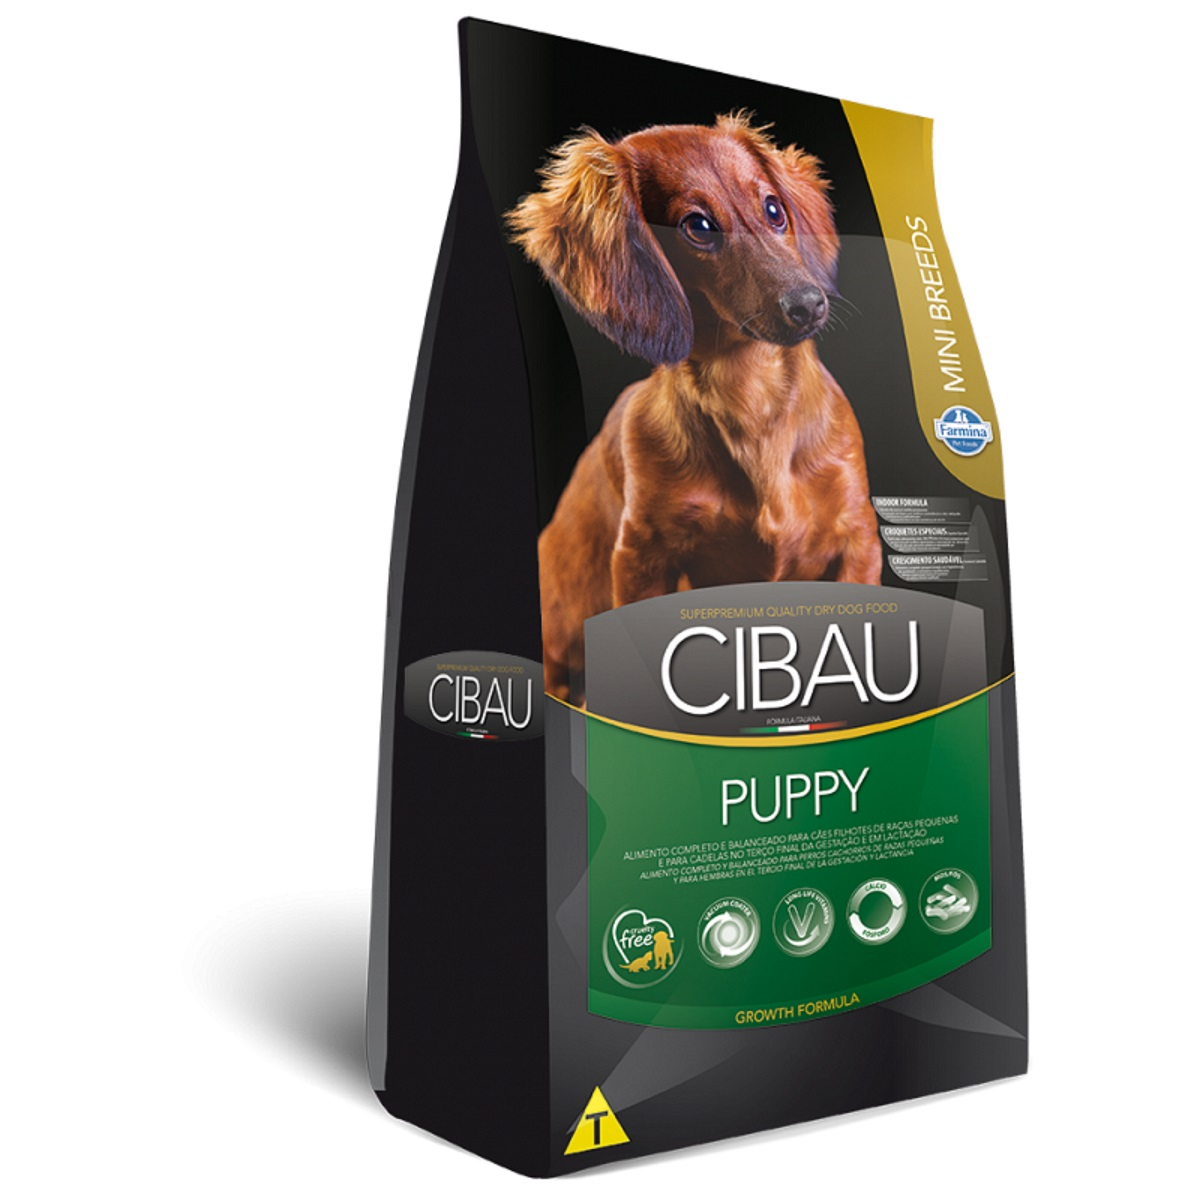 Cibau Puppy Small Breed 3 Kilos